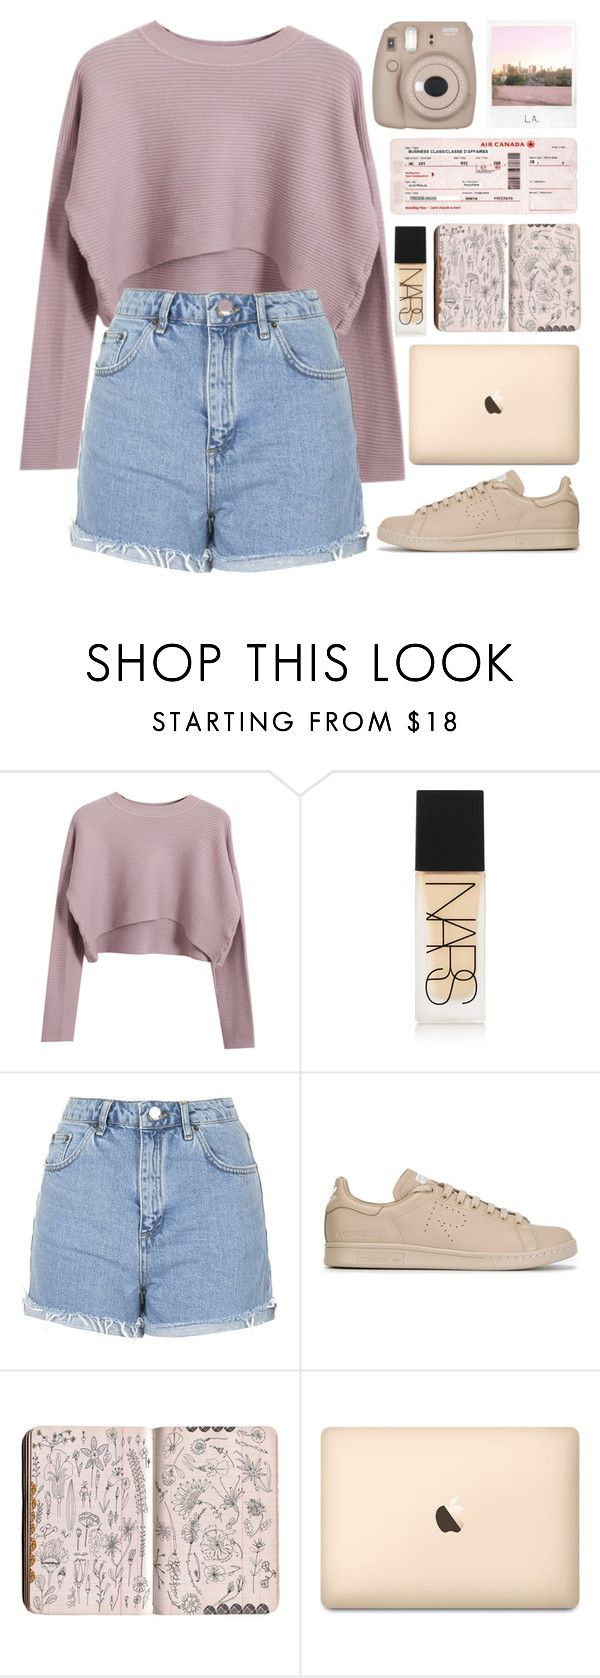 """this pink"" by janesabelle on Polyvore featuring Chicnova Fashion, NARS Cosmetics, Topshop, adidas, Polaroid and Fujifilm"